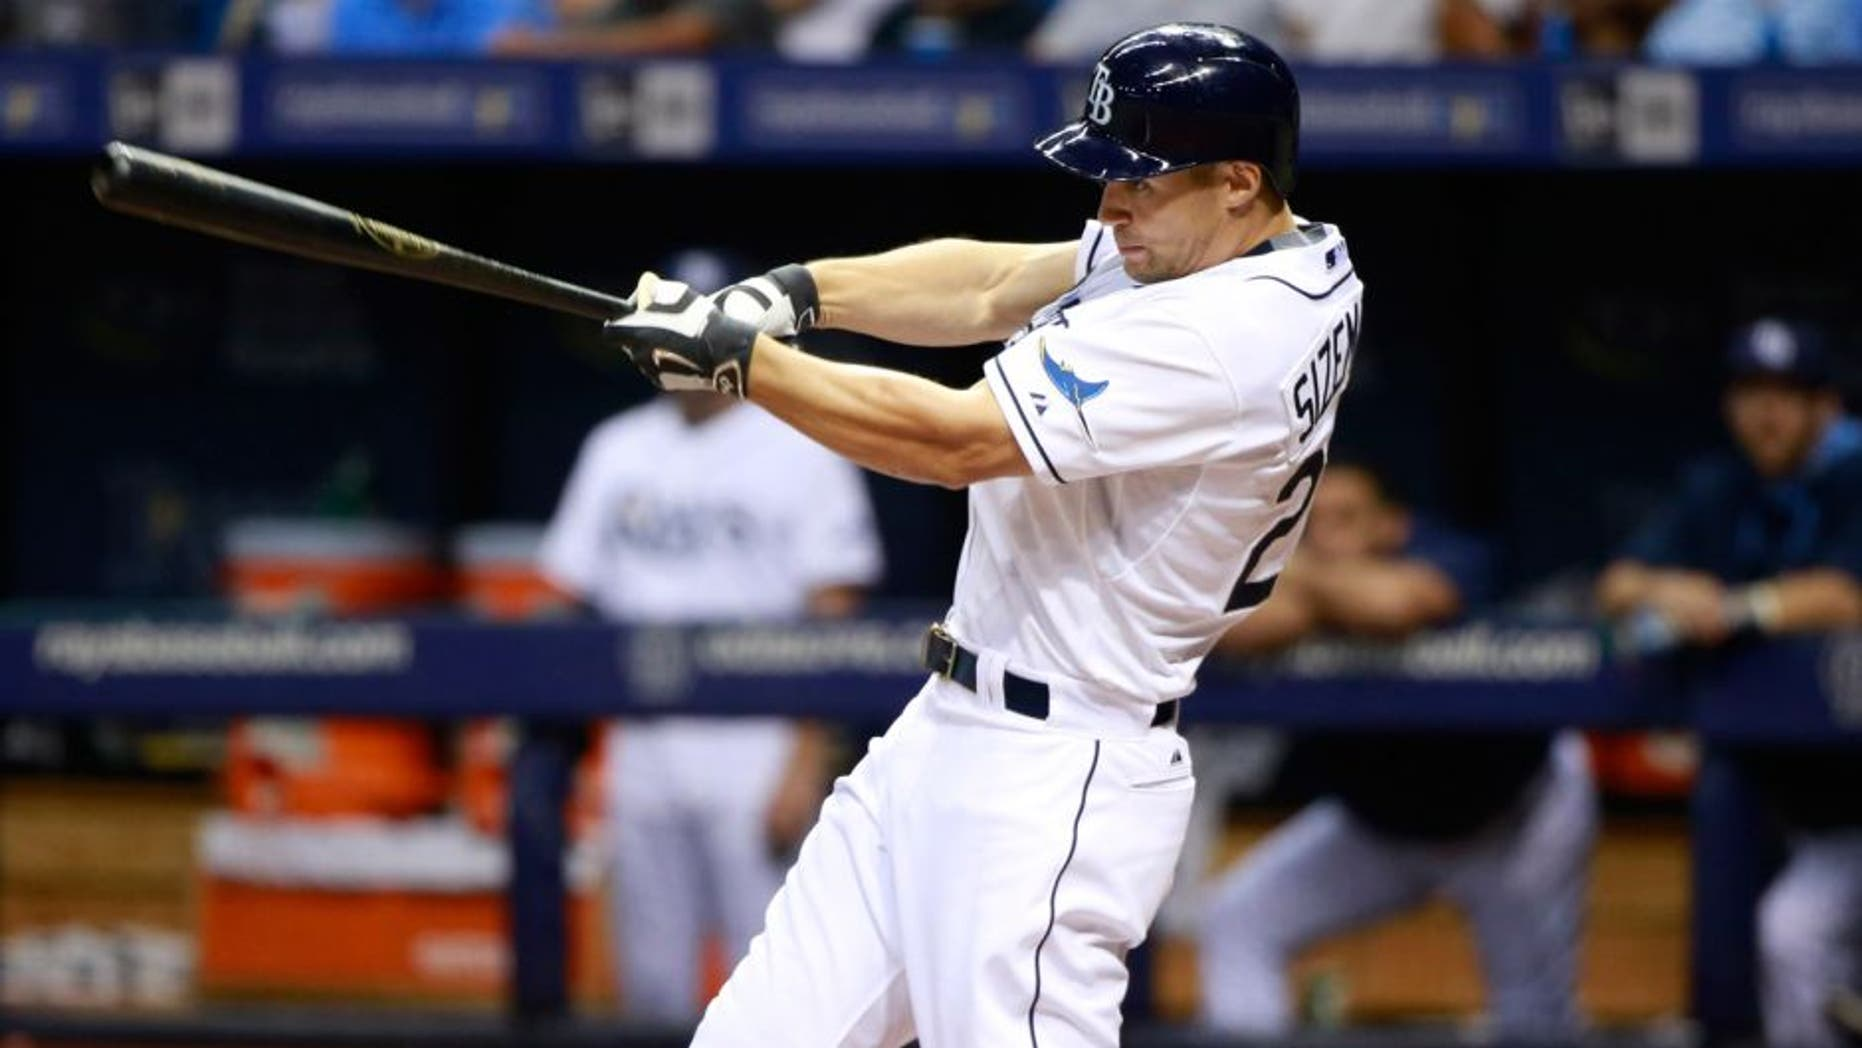 Aug 12, 2015; St. Petersburg, FL, USA; Tampa Bay Rays left fielder Grady Sizemore (24) singles during the third inning against the Atlanta Braves at Tropicana Field. Mandatory Credit: Kim Klement-USA TODAY Sports